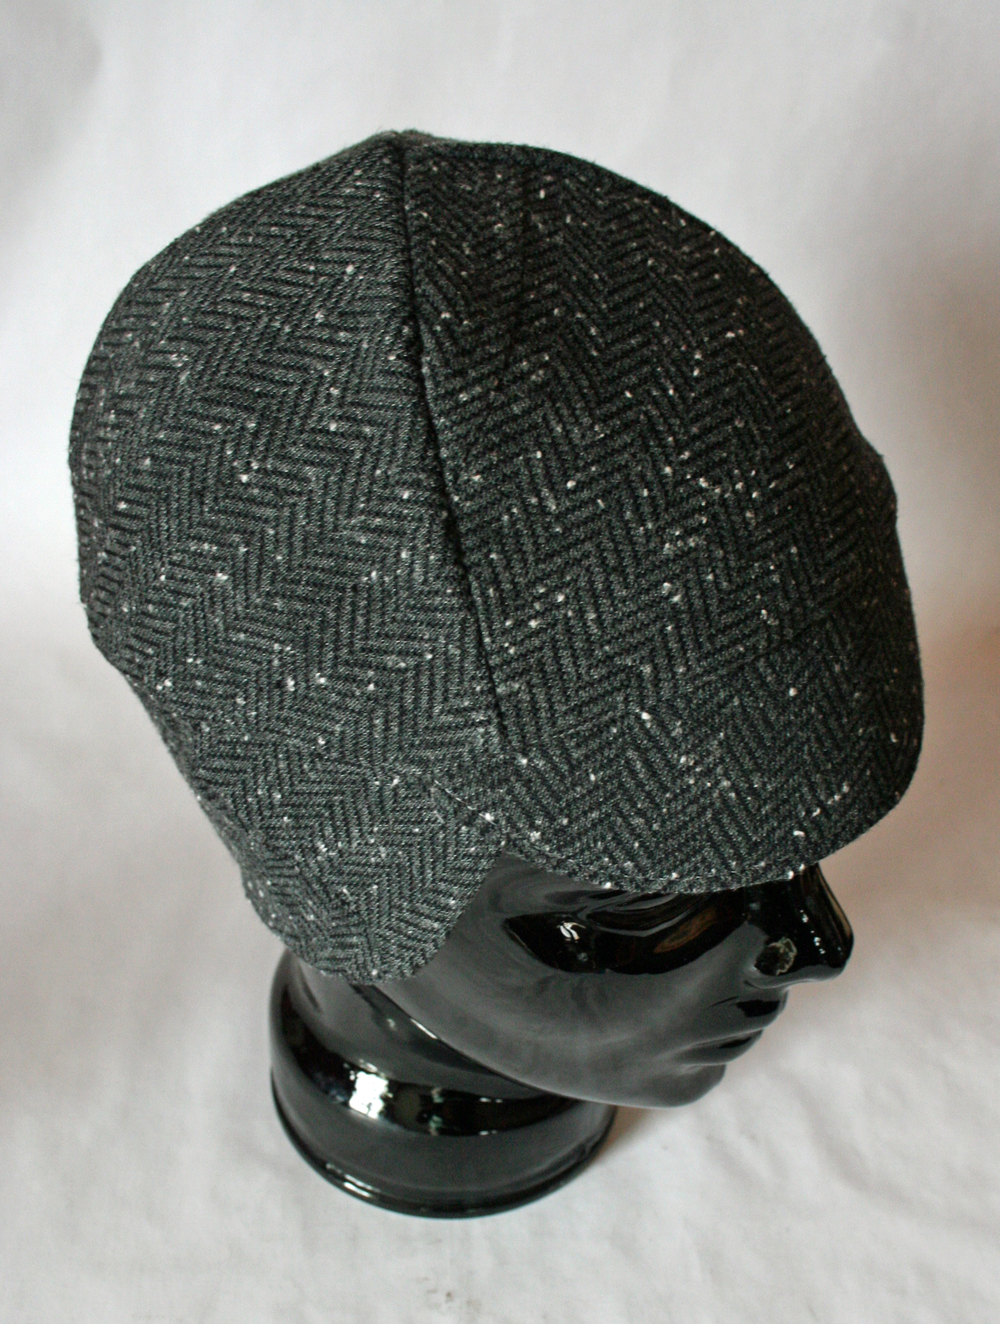 This tweed cap's brim has a red underside. I really wanted to gift this cap to myself.